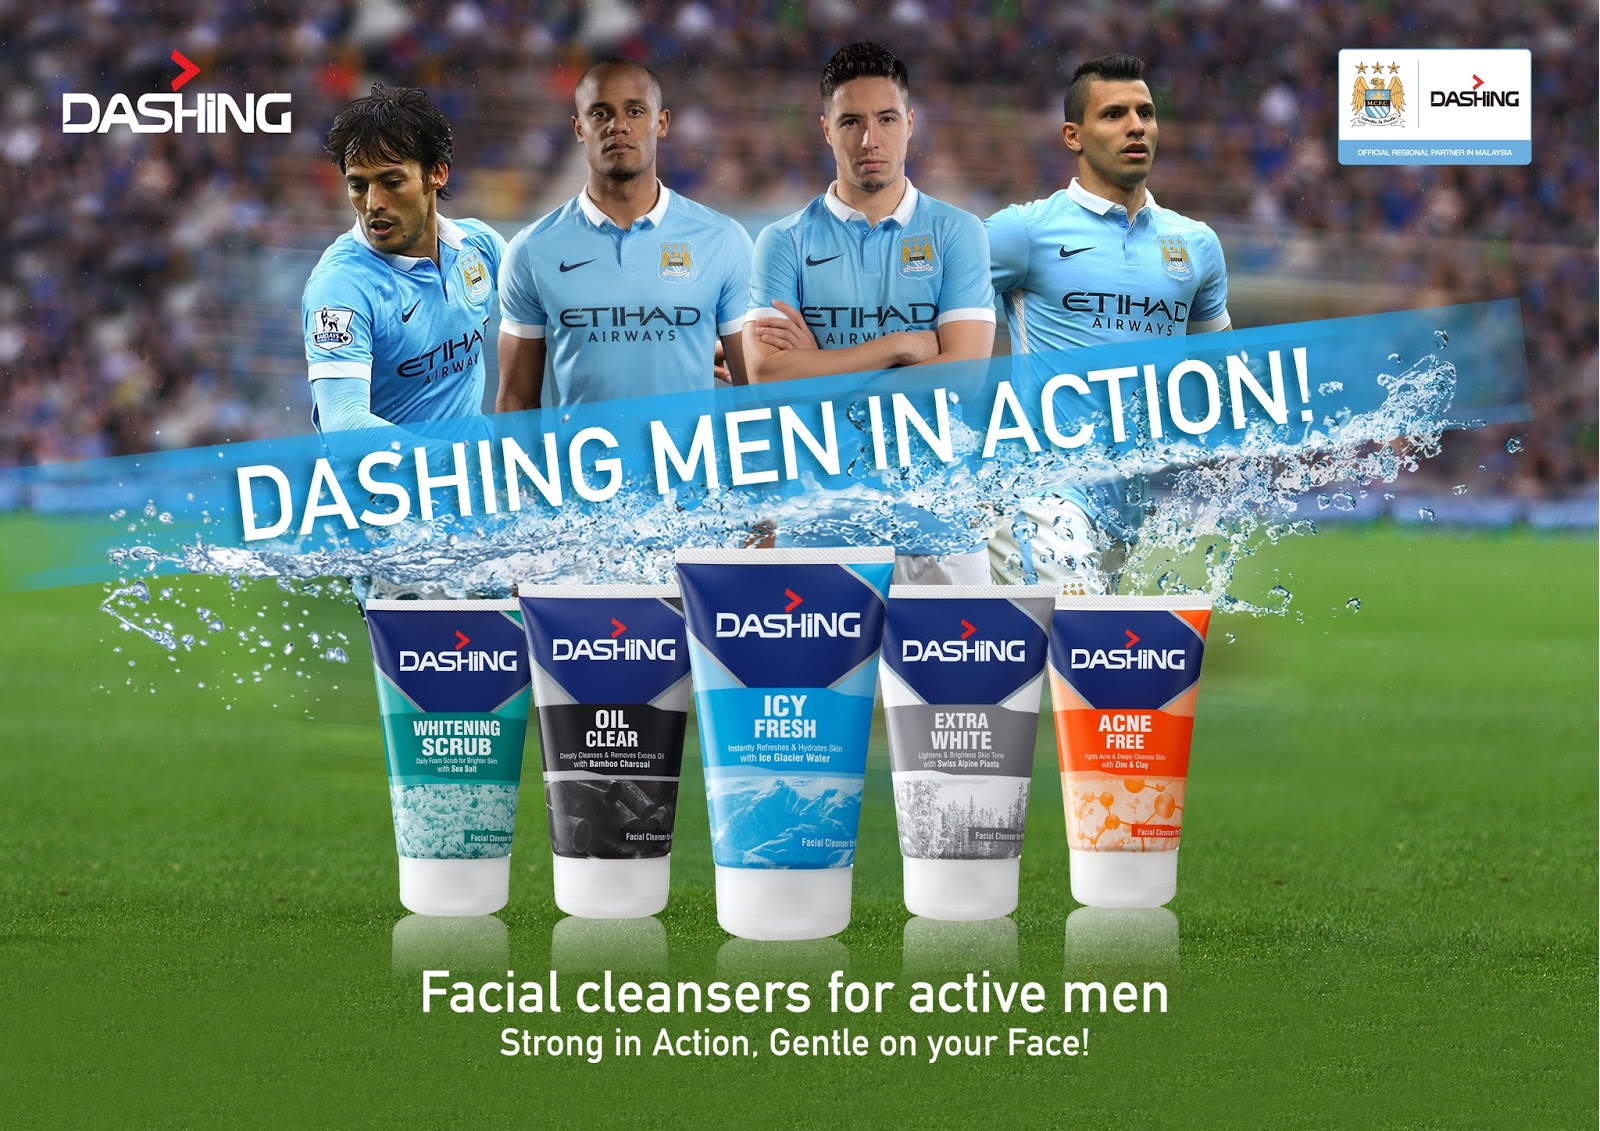 review-Dashing-Manchester-City-Football-Club